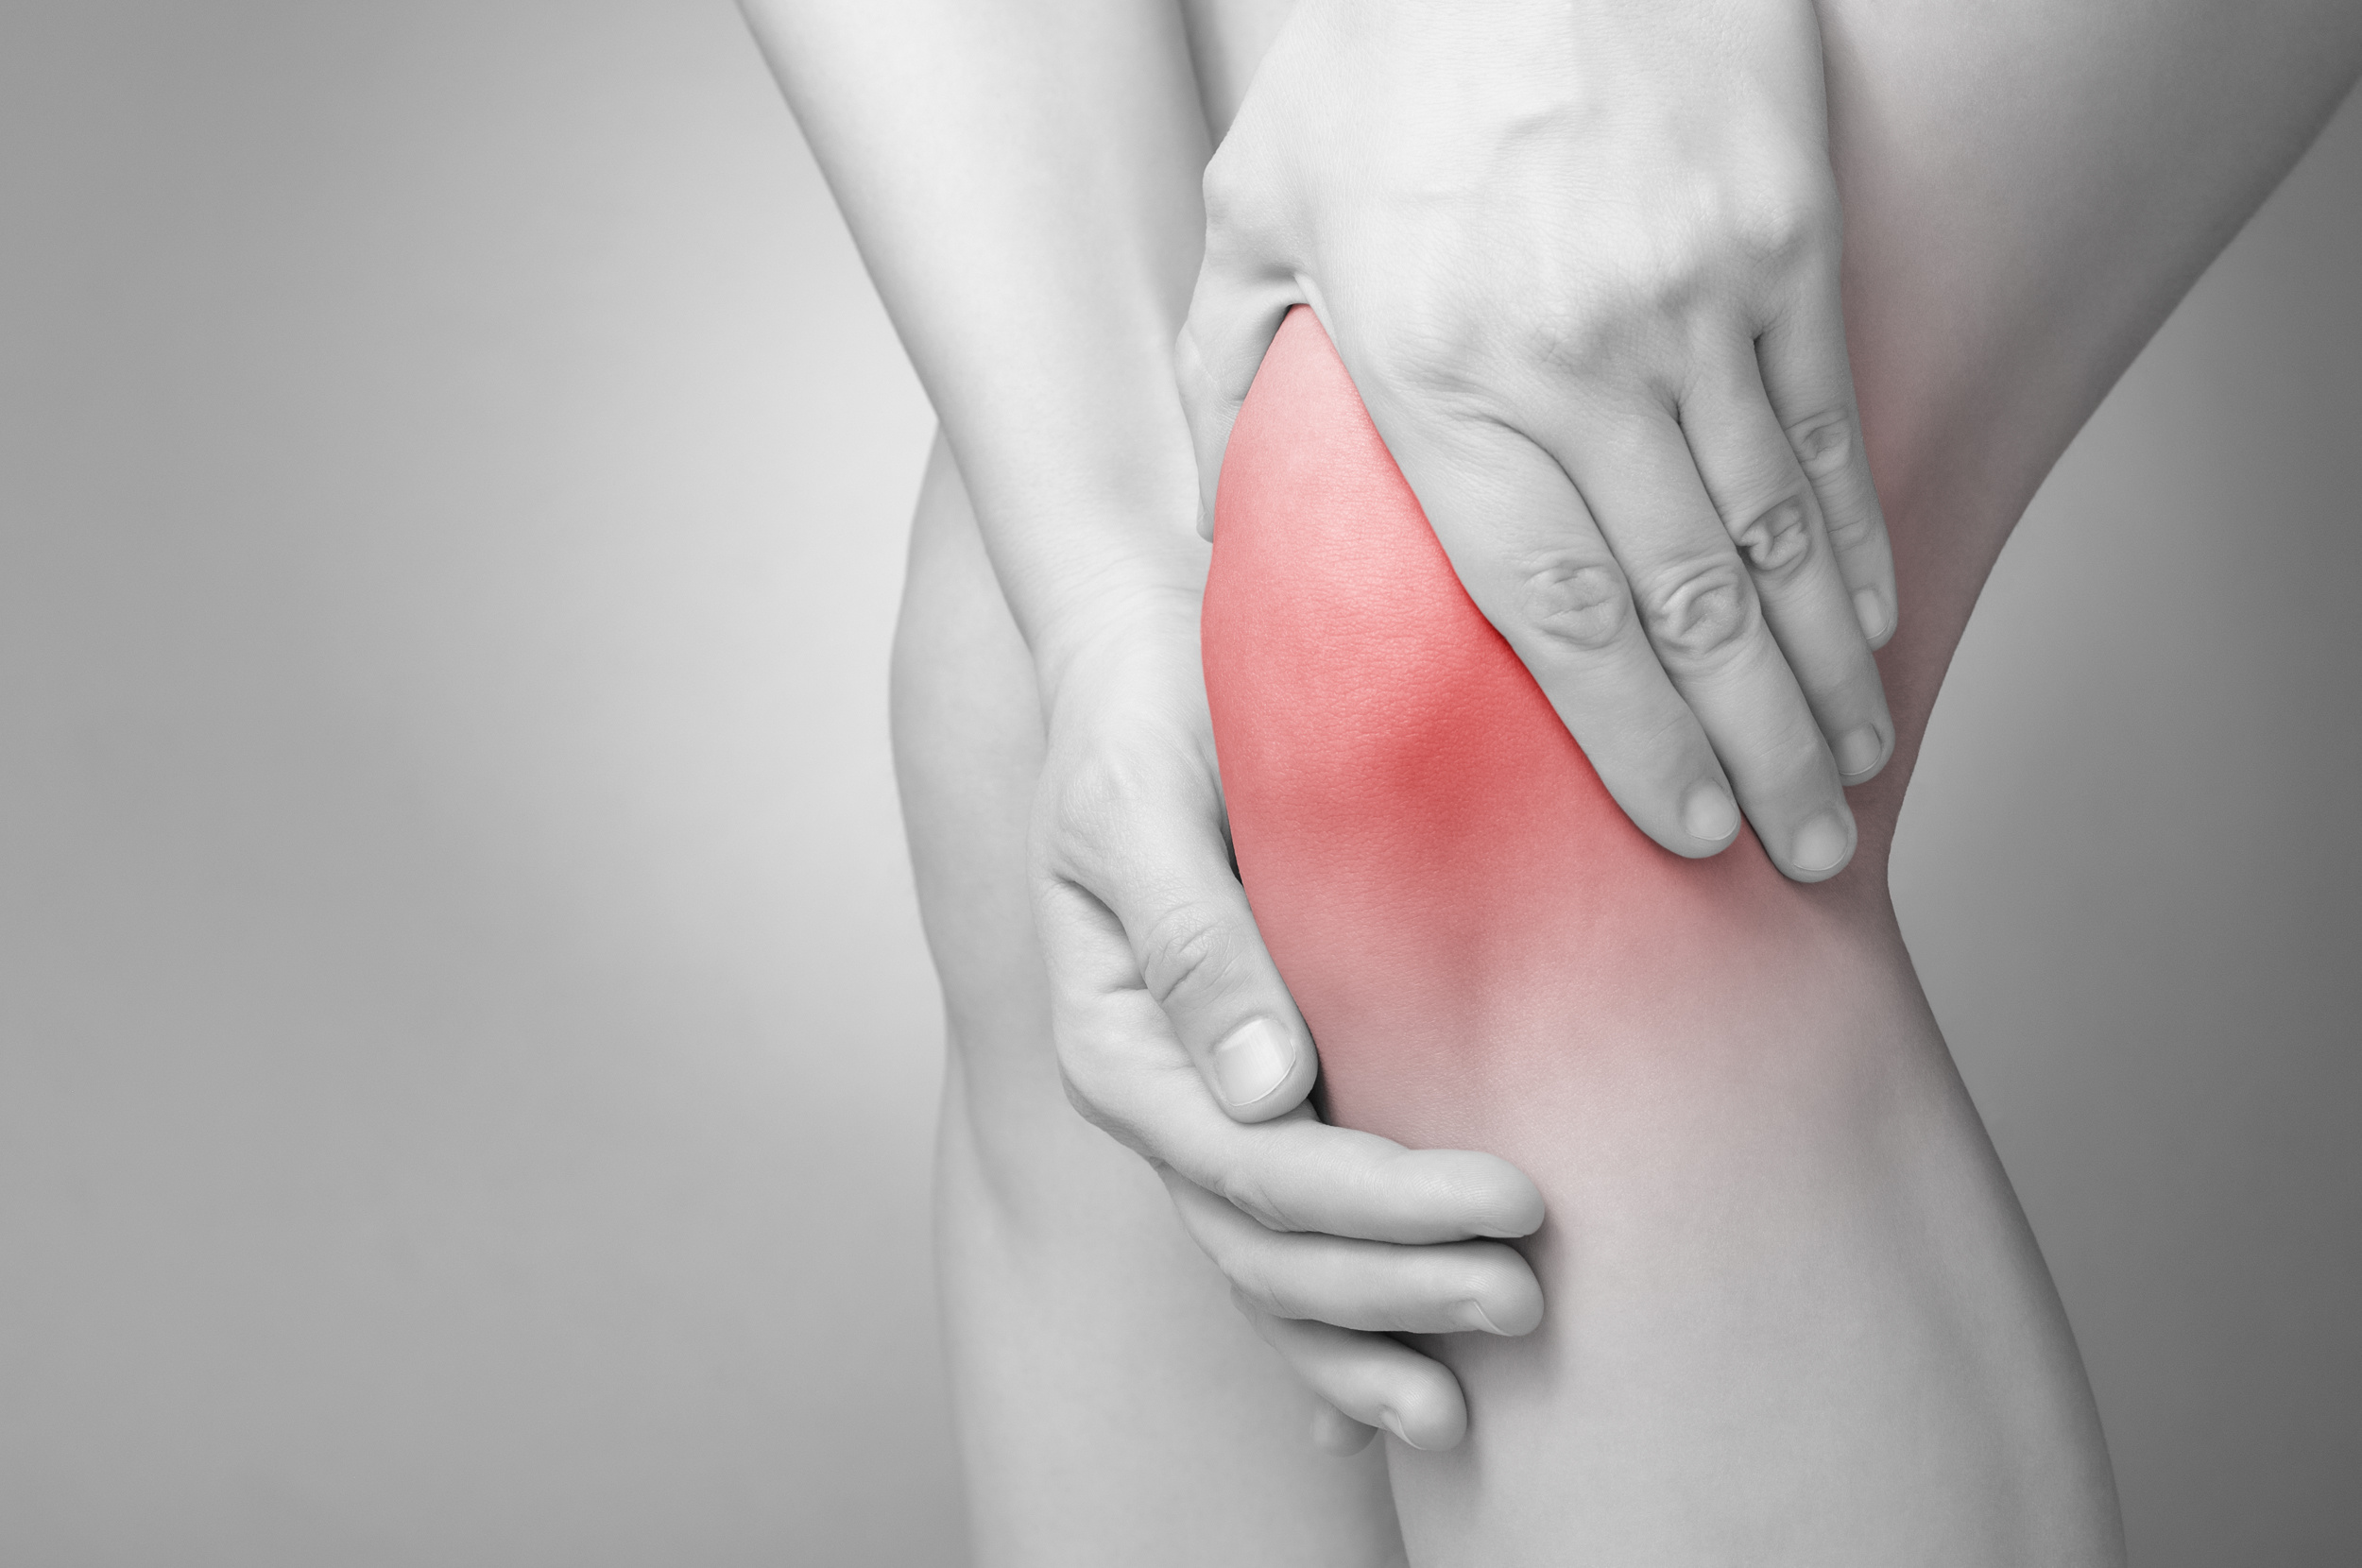 Knee Replacement Surgeons in Raleigh NC